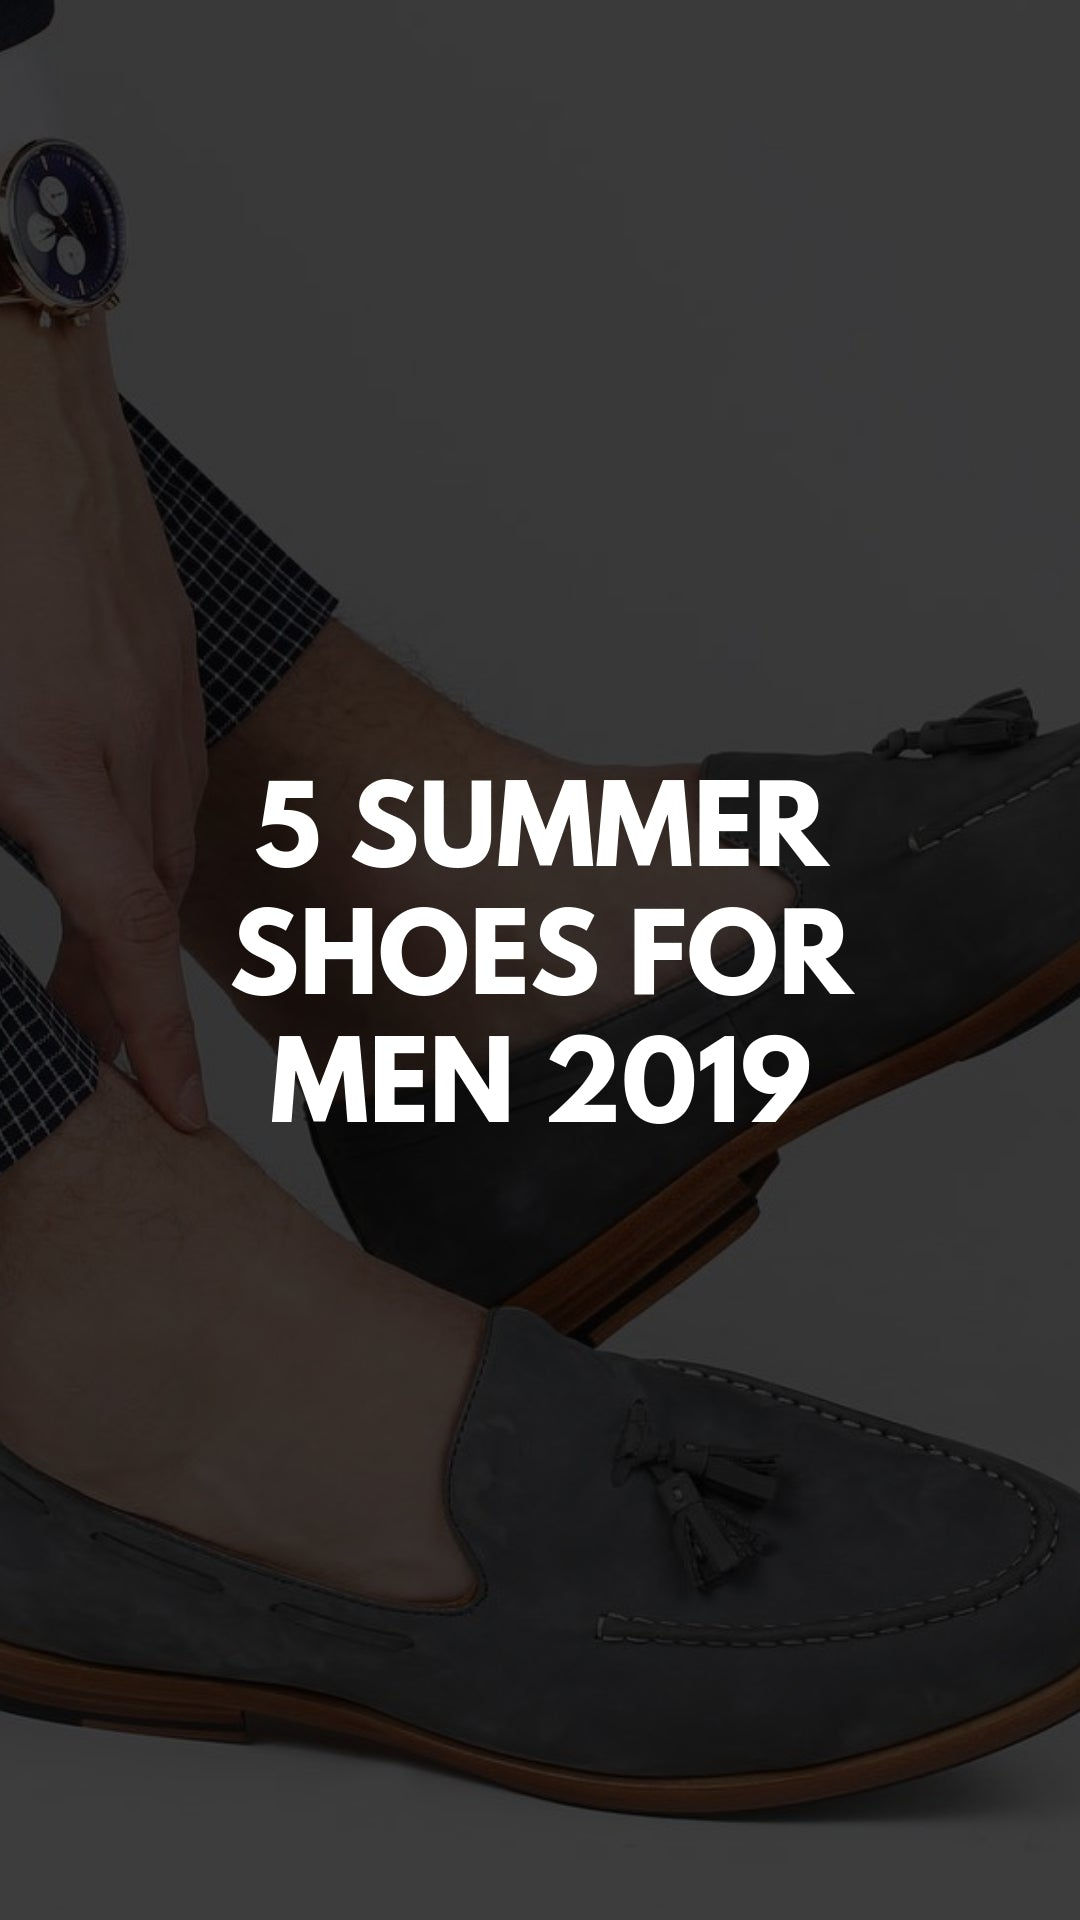 5 Shoes Guys Need for Summer 2019 #summer #shoes #fashiontips